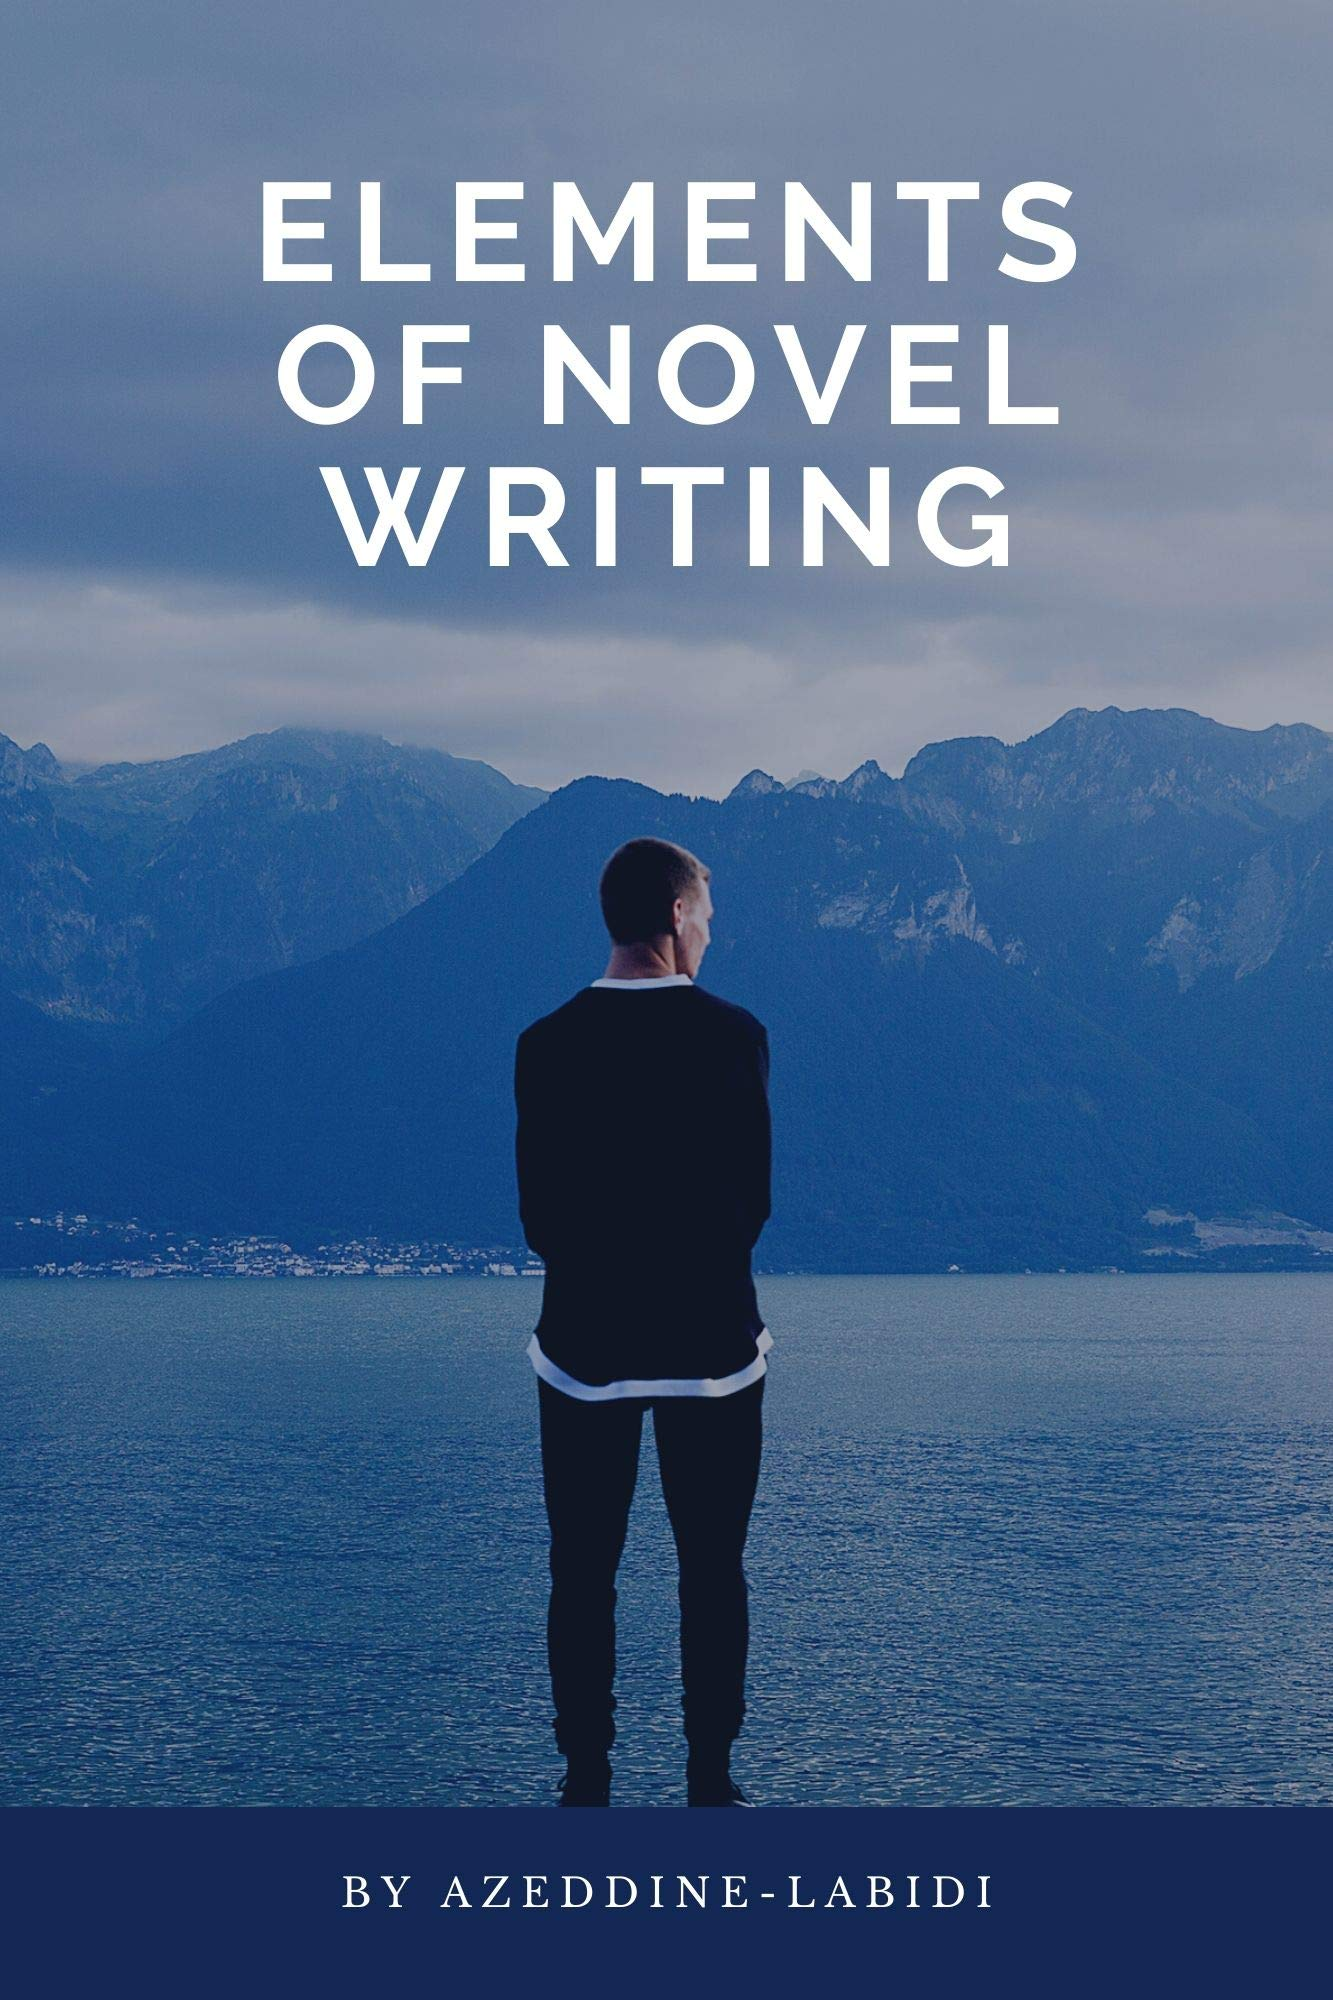 Elements of Novel Writing: Novel Writing Made Easy - Some Tips to Help You Write Your Novel